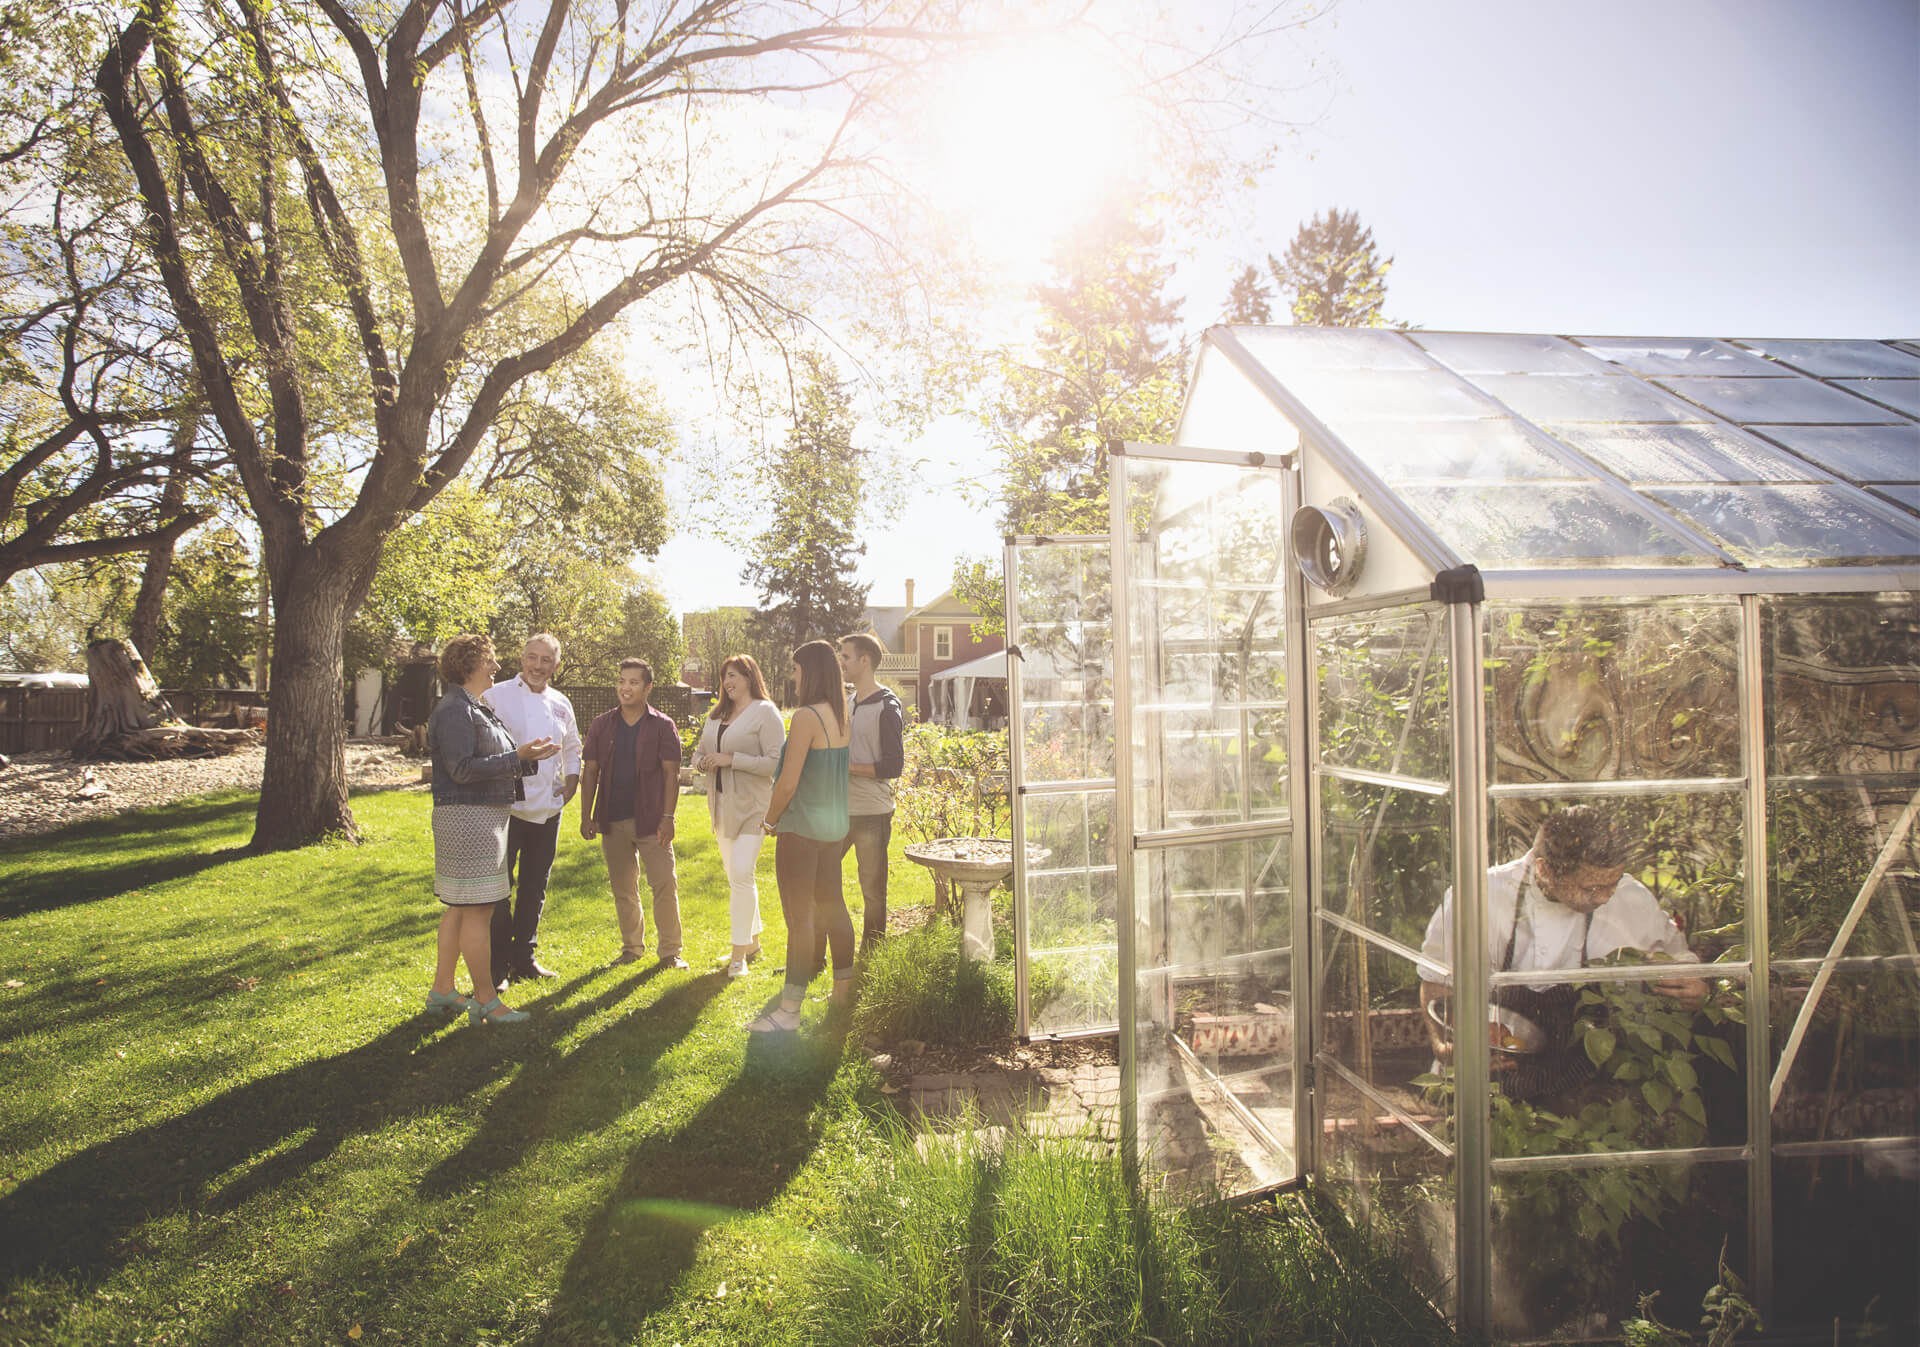 Meet the chefs and producers that bring farm to table with Calgary Food Tours